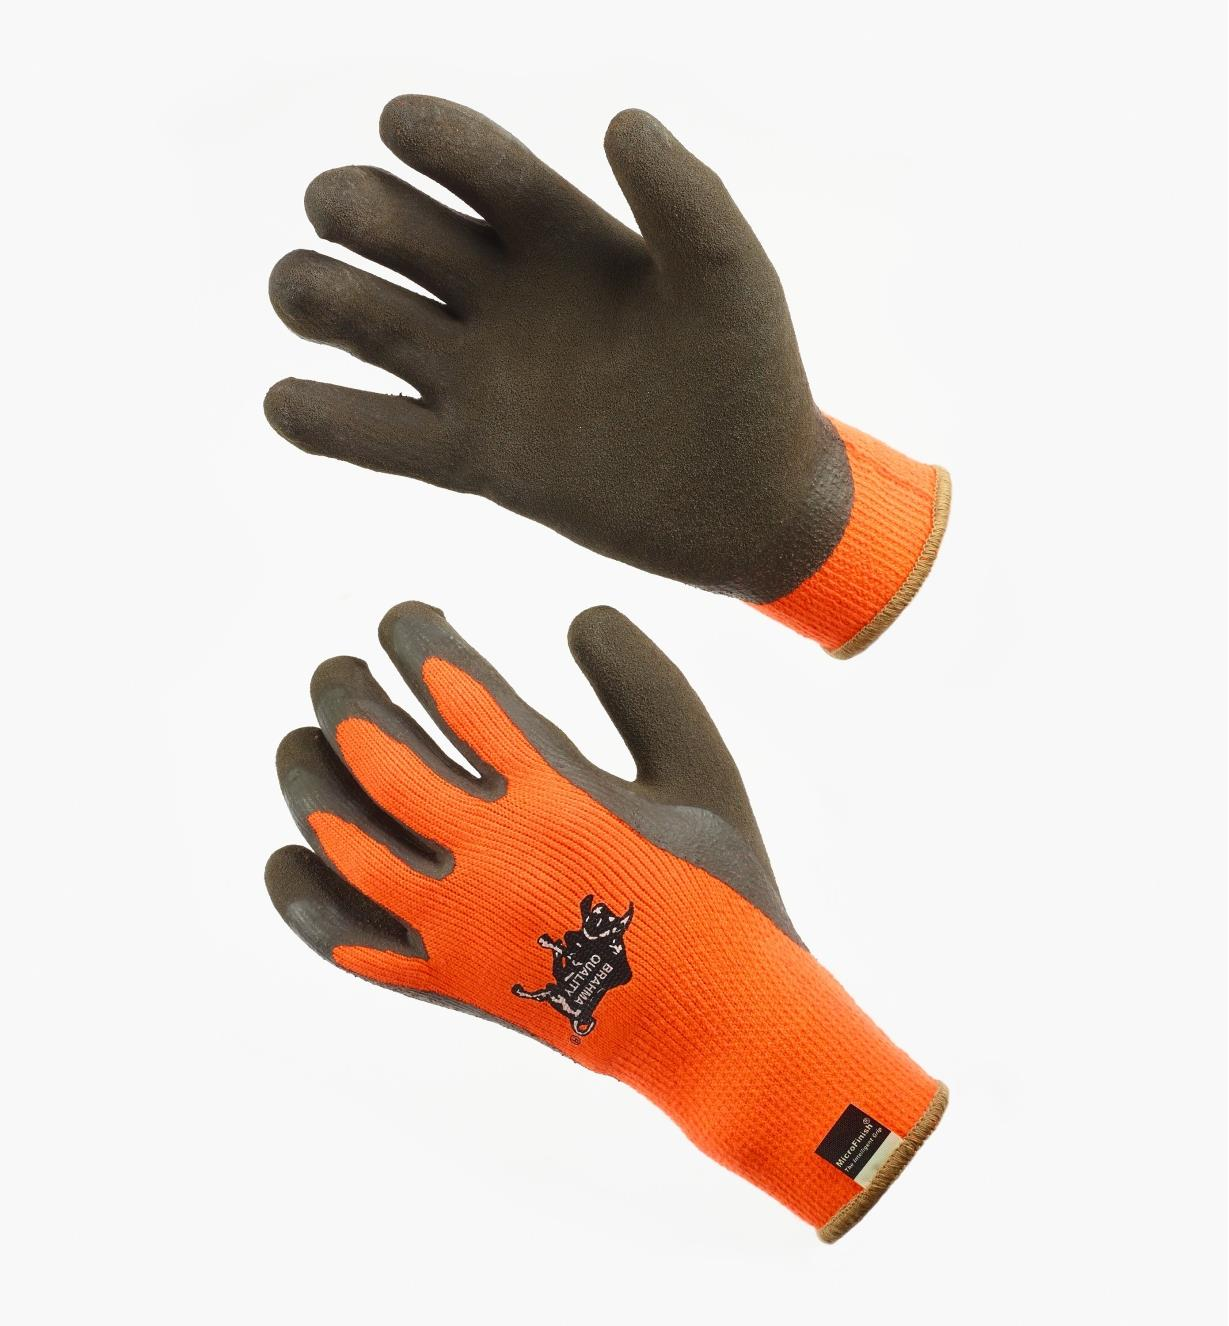 AH202 - Thermal Gripper Gloves, M (size 8)